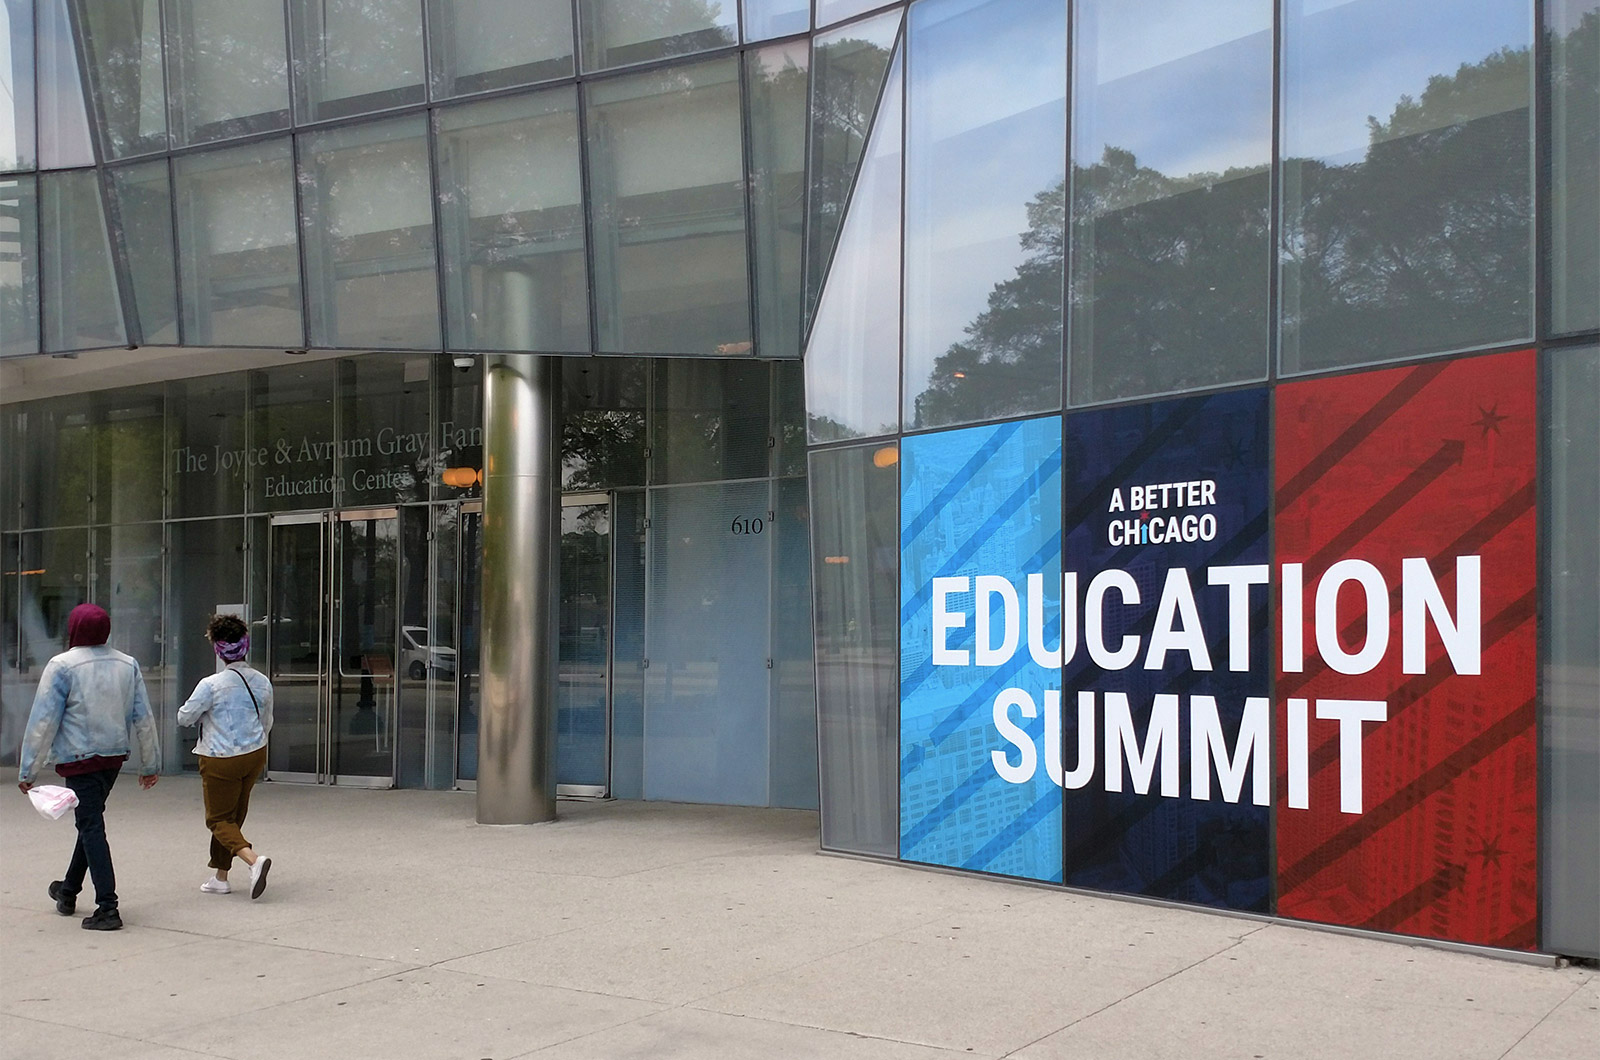 Education Summit Image